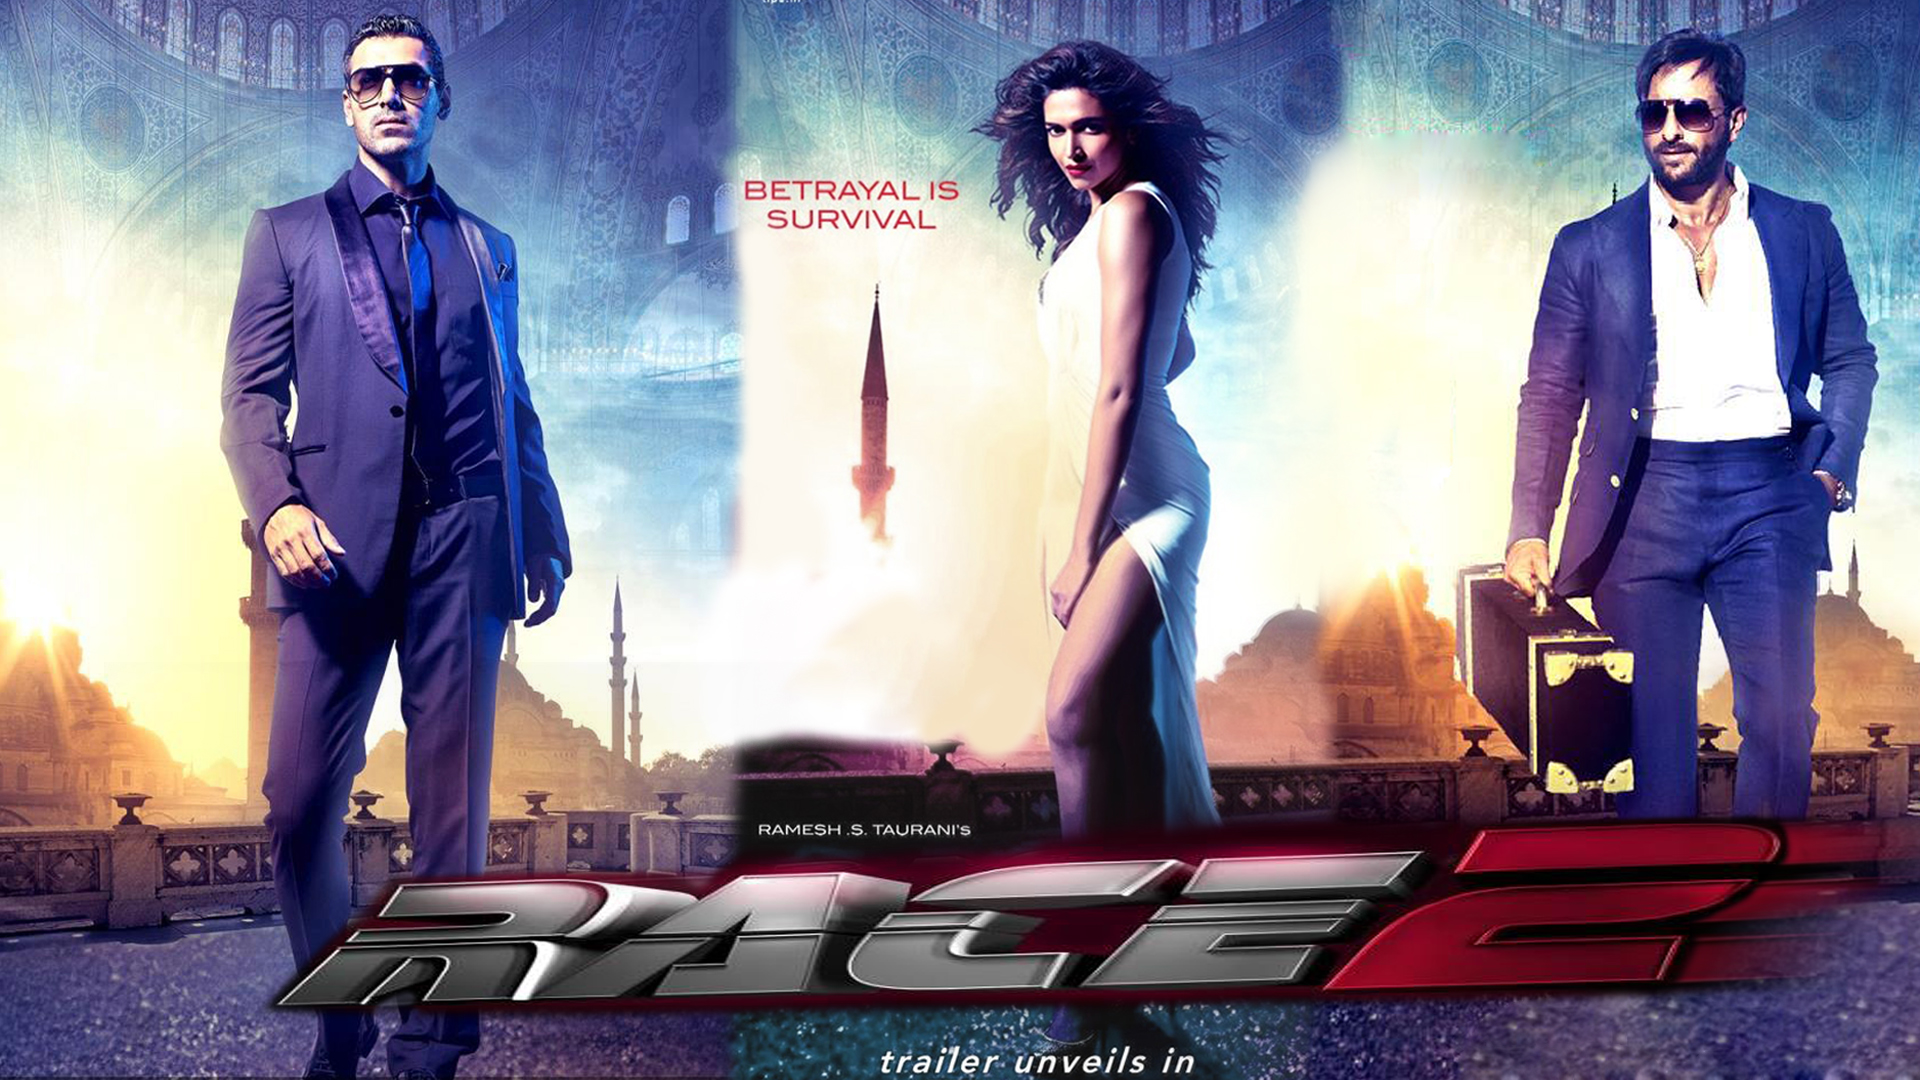 Movie 2013 Race 2 Poster